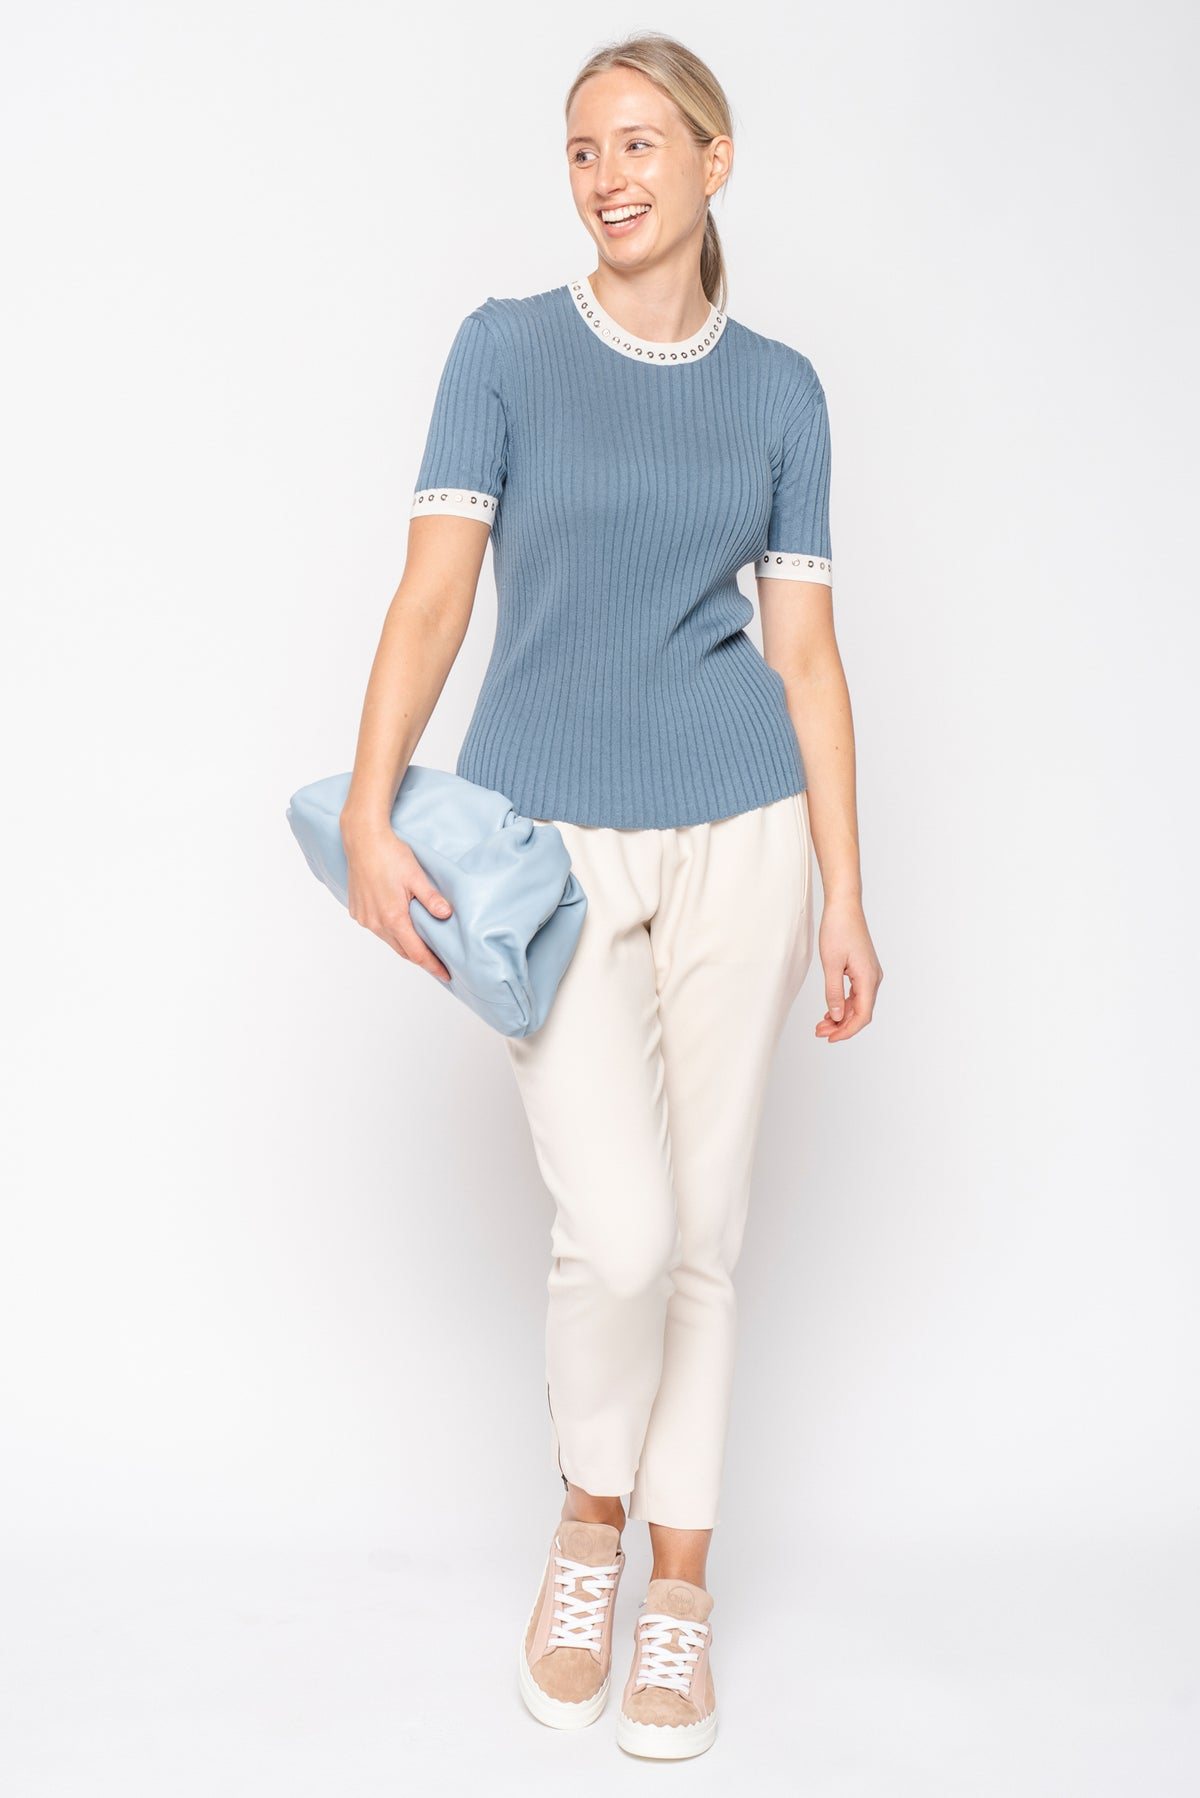 Chloé Ocean Blue Short Sleeve Knit with Eyelet Neck Detail